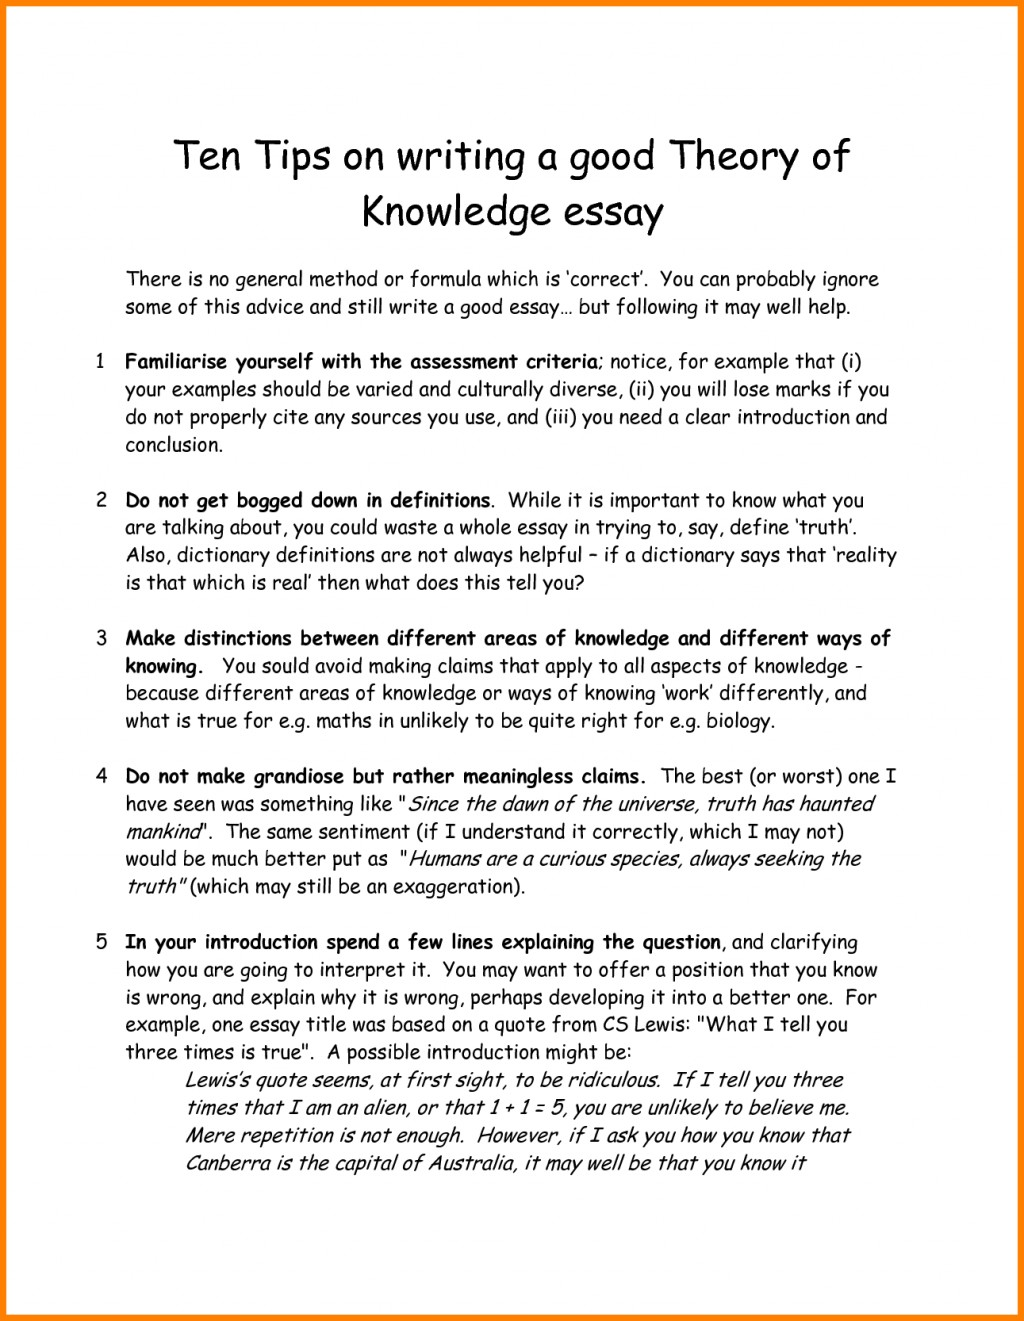 001 How To Start Good Essay Example Ways English The Paragraph An Observation Examples Off About Yourself Ledger Pa Informative Writing Analysis Conclusion Awesome A Paper For College Introduction Biography Large